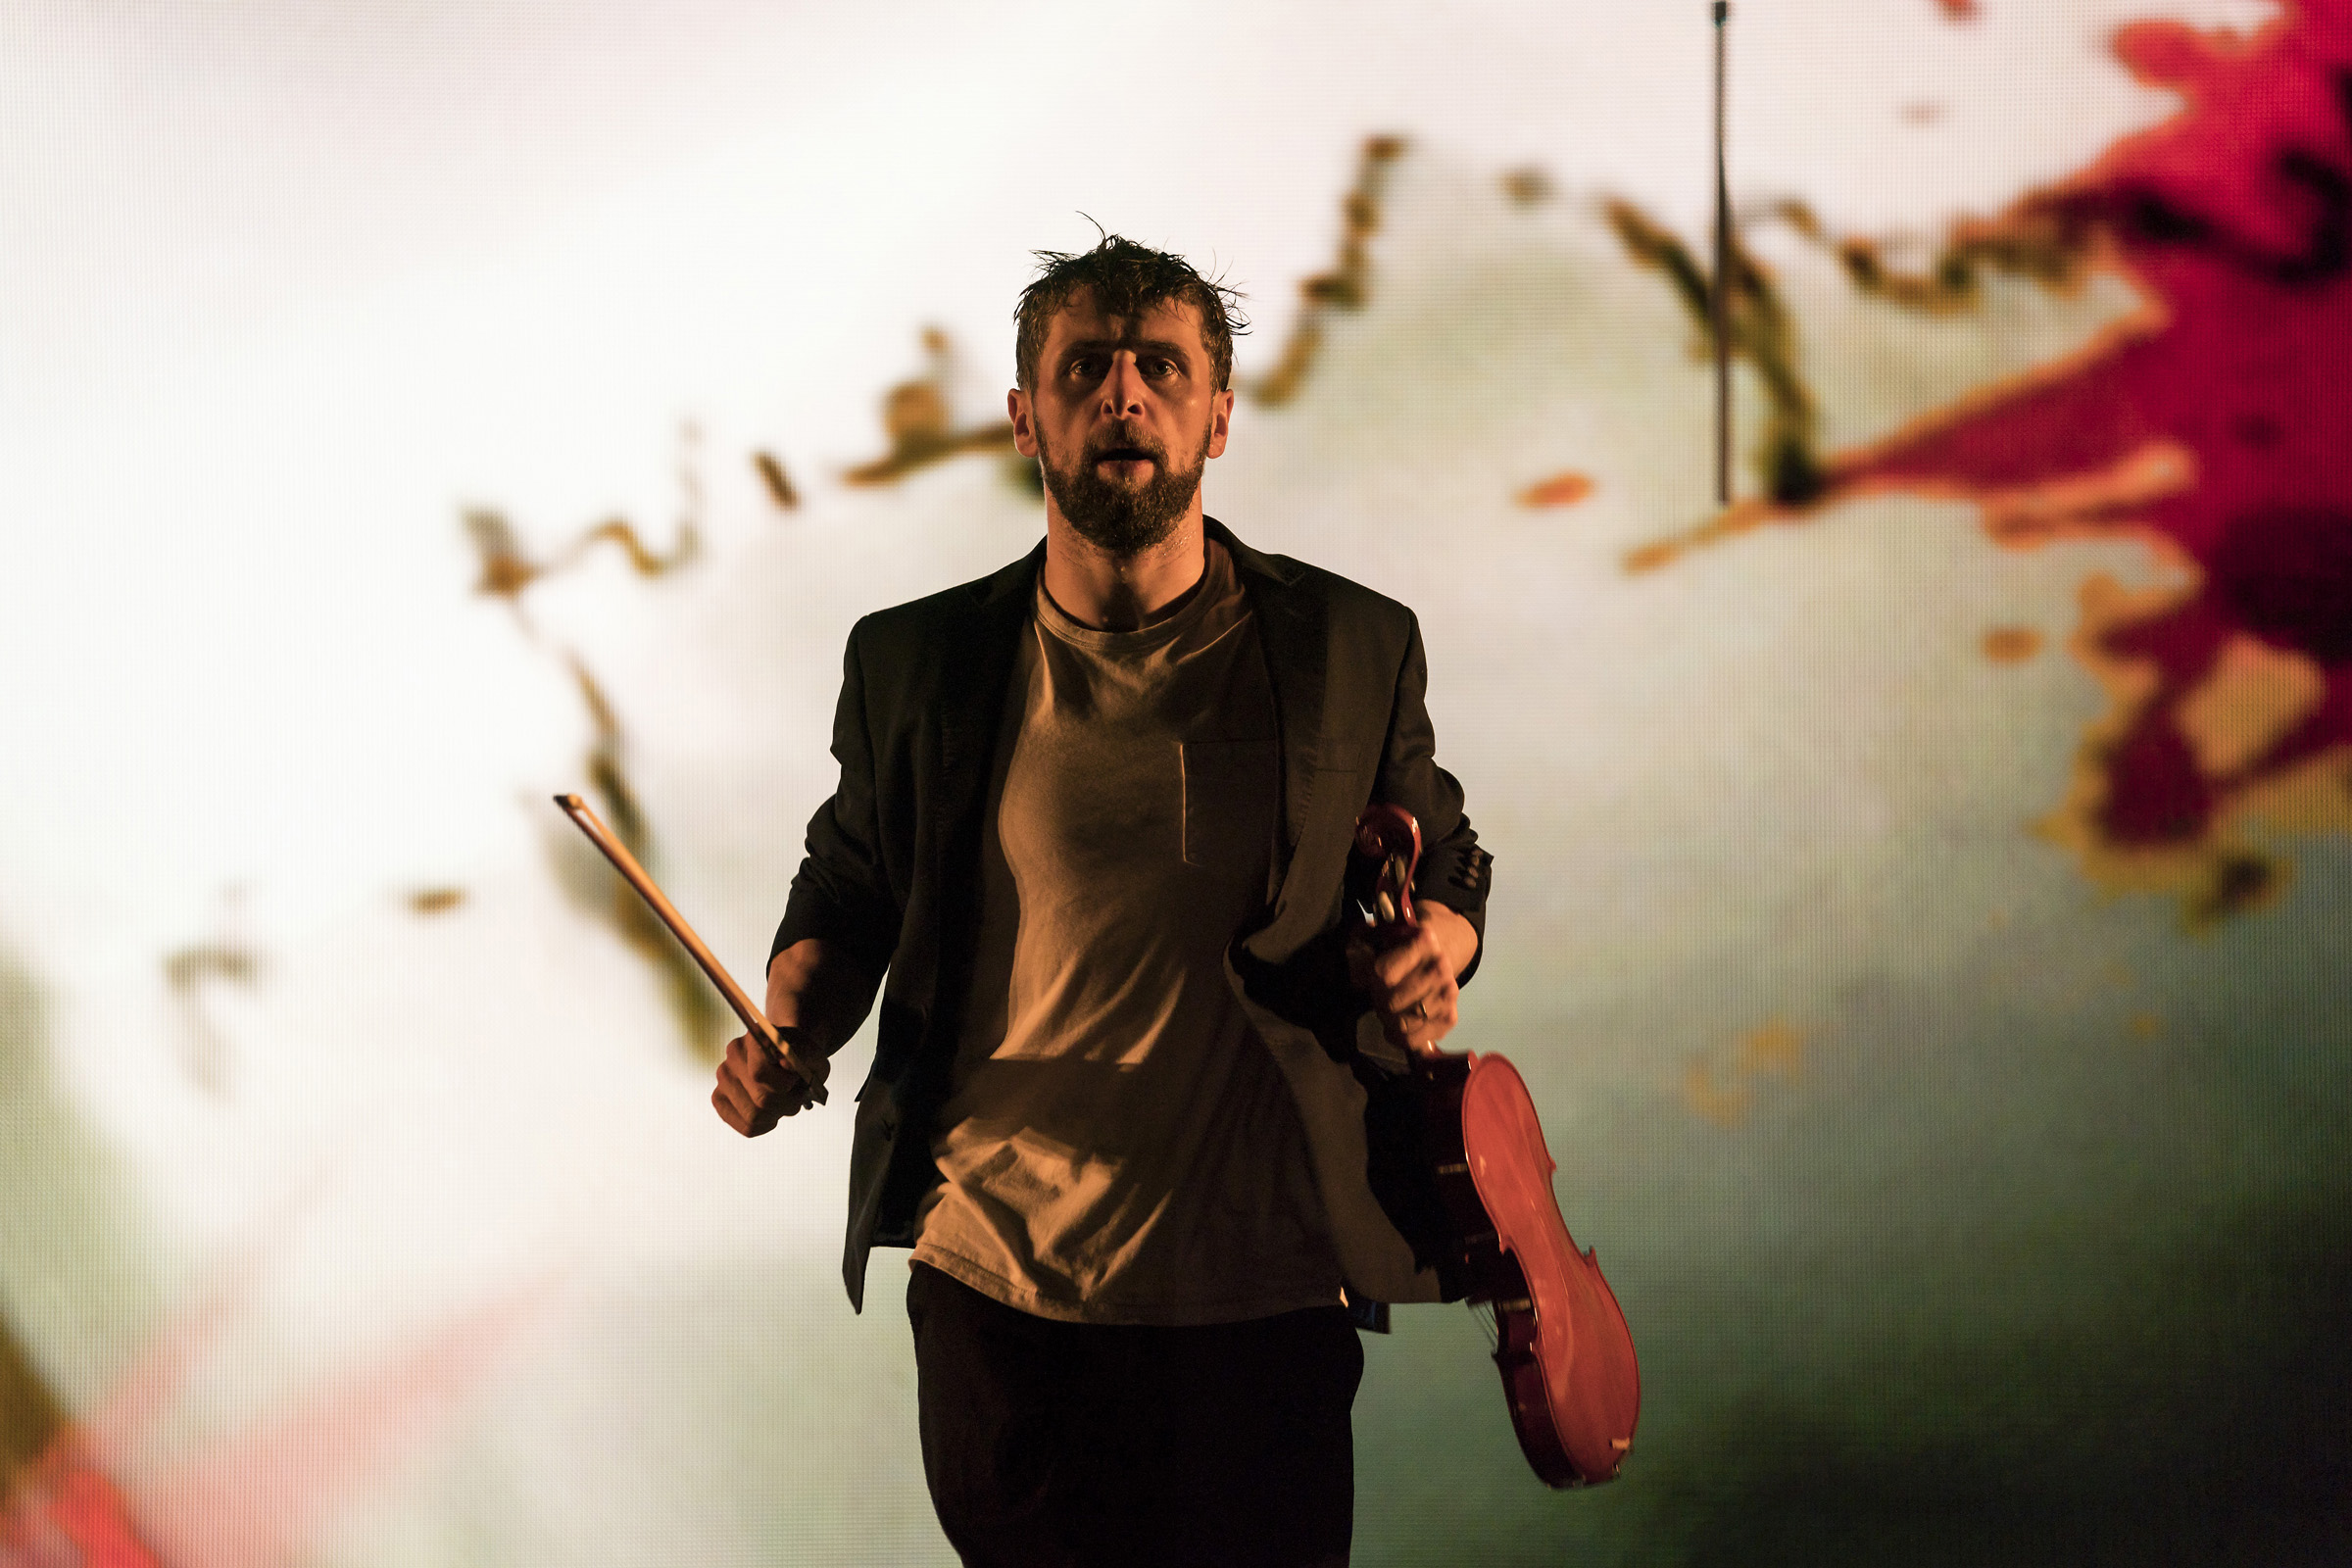 Aaron Monaghan as Martin in The Second Violinist at the Galway International Arts Festival. Photo: Patrick Redmond.